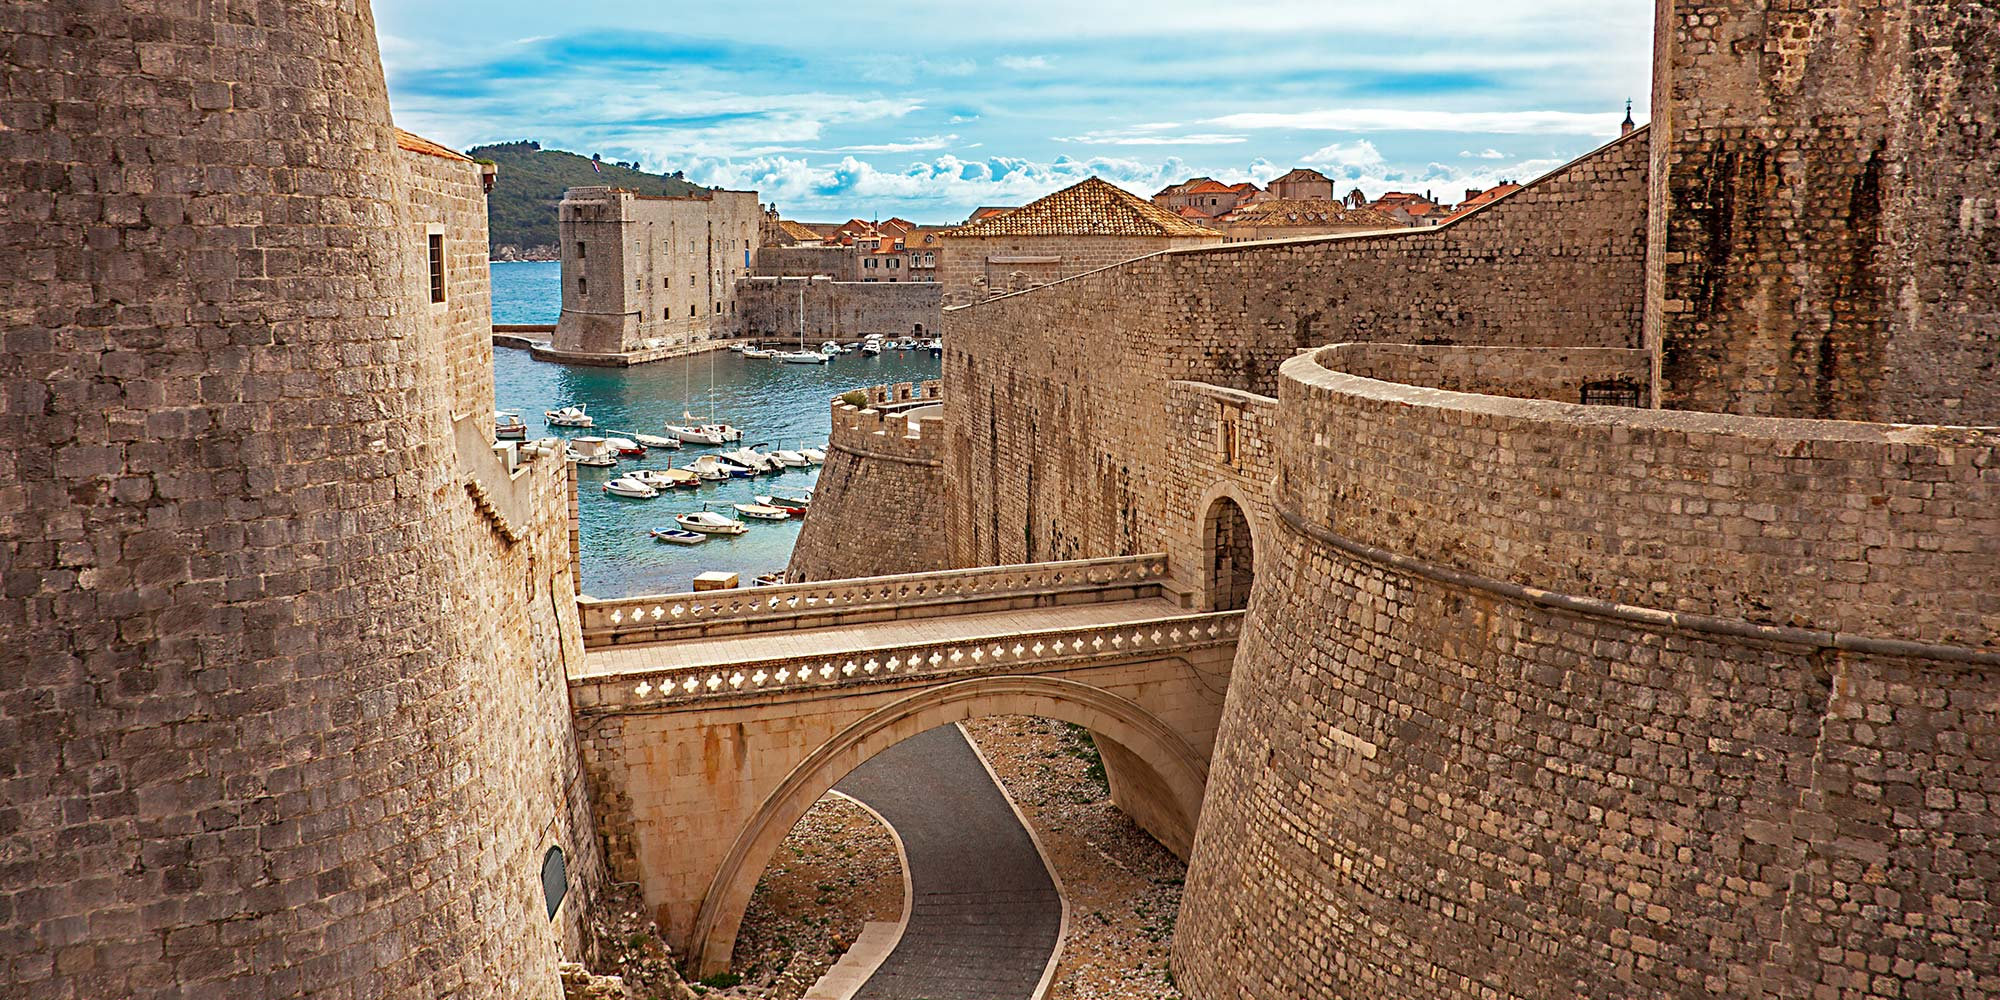 What to see in Dubrovnik